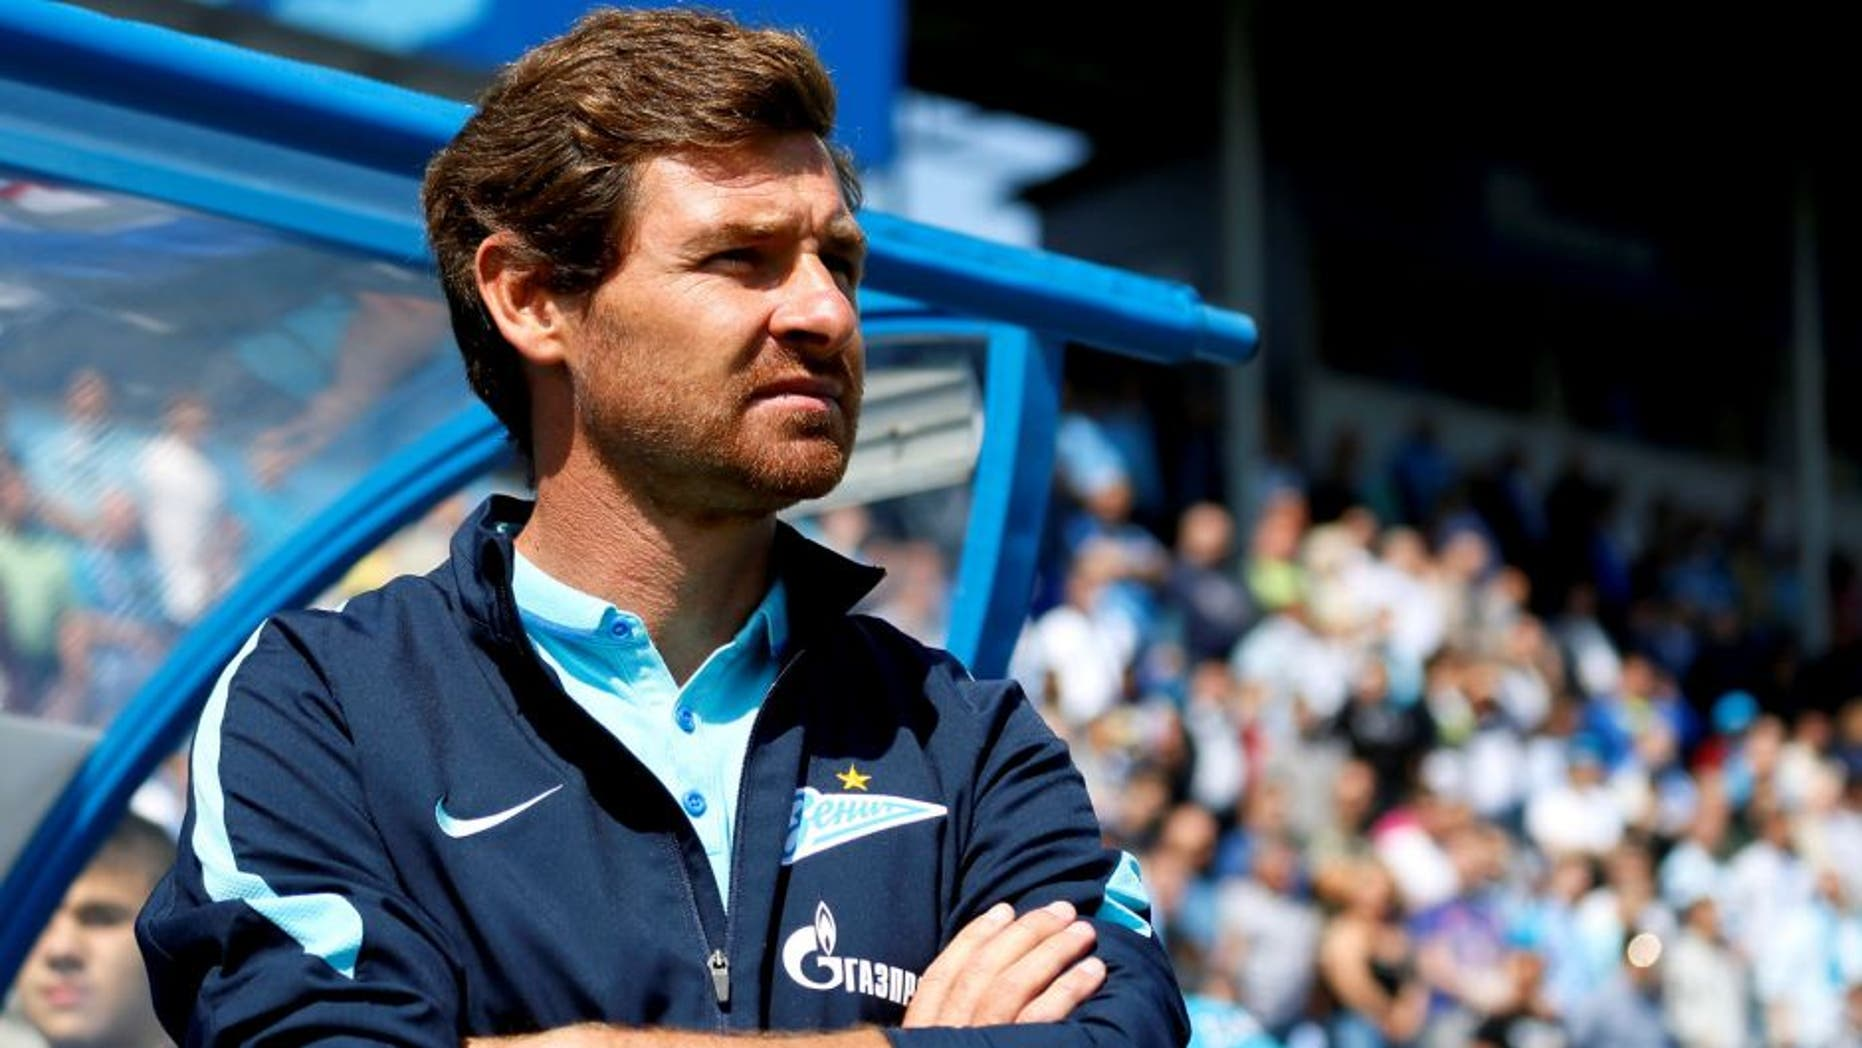 ST. PETERSBURG, RUSSIA - JULY 19: FC Zenit St. Petersburg head coach Andre Villas-Boas looks on during the Russian Football League match between FC Zenit St. Petersburg and FC Dinamo Moscow at the Petrovsky stadium on July 19, 2015 in St. Petersburg, Russia. (Photo by Epsilon/Getty Images)